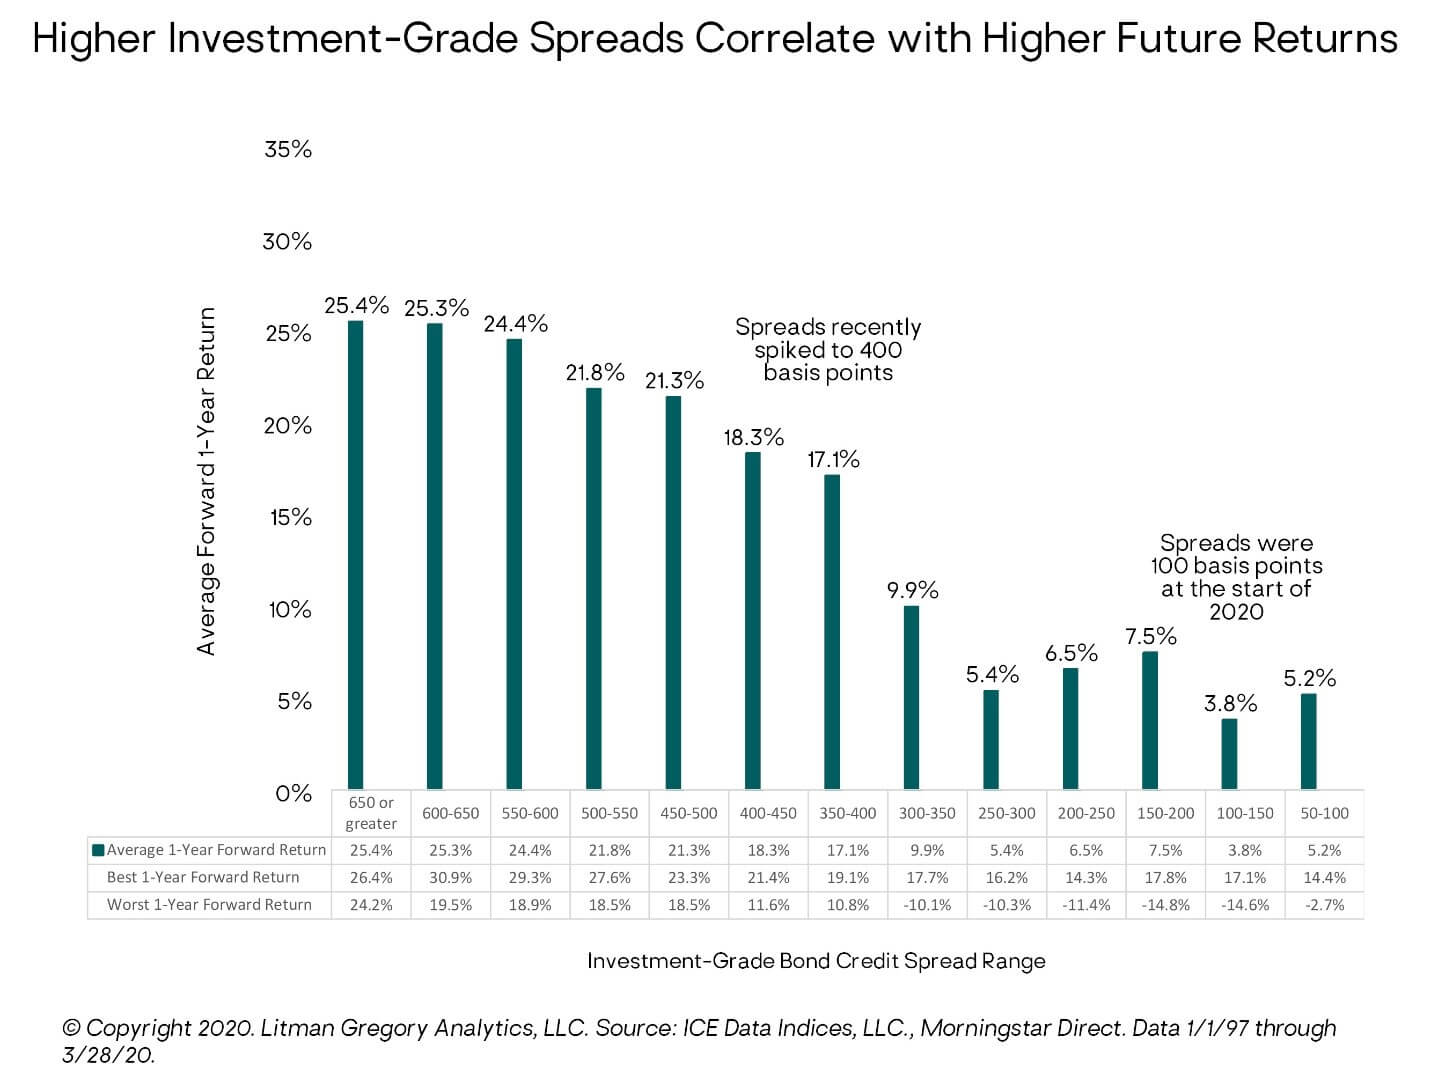 Higher Investment-Grade Spreads